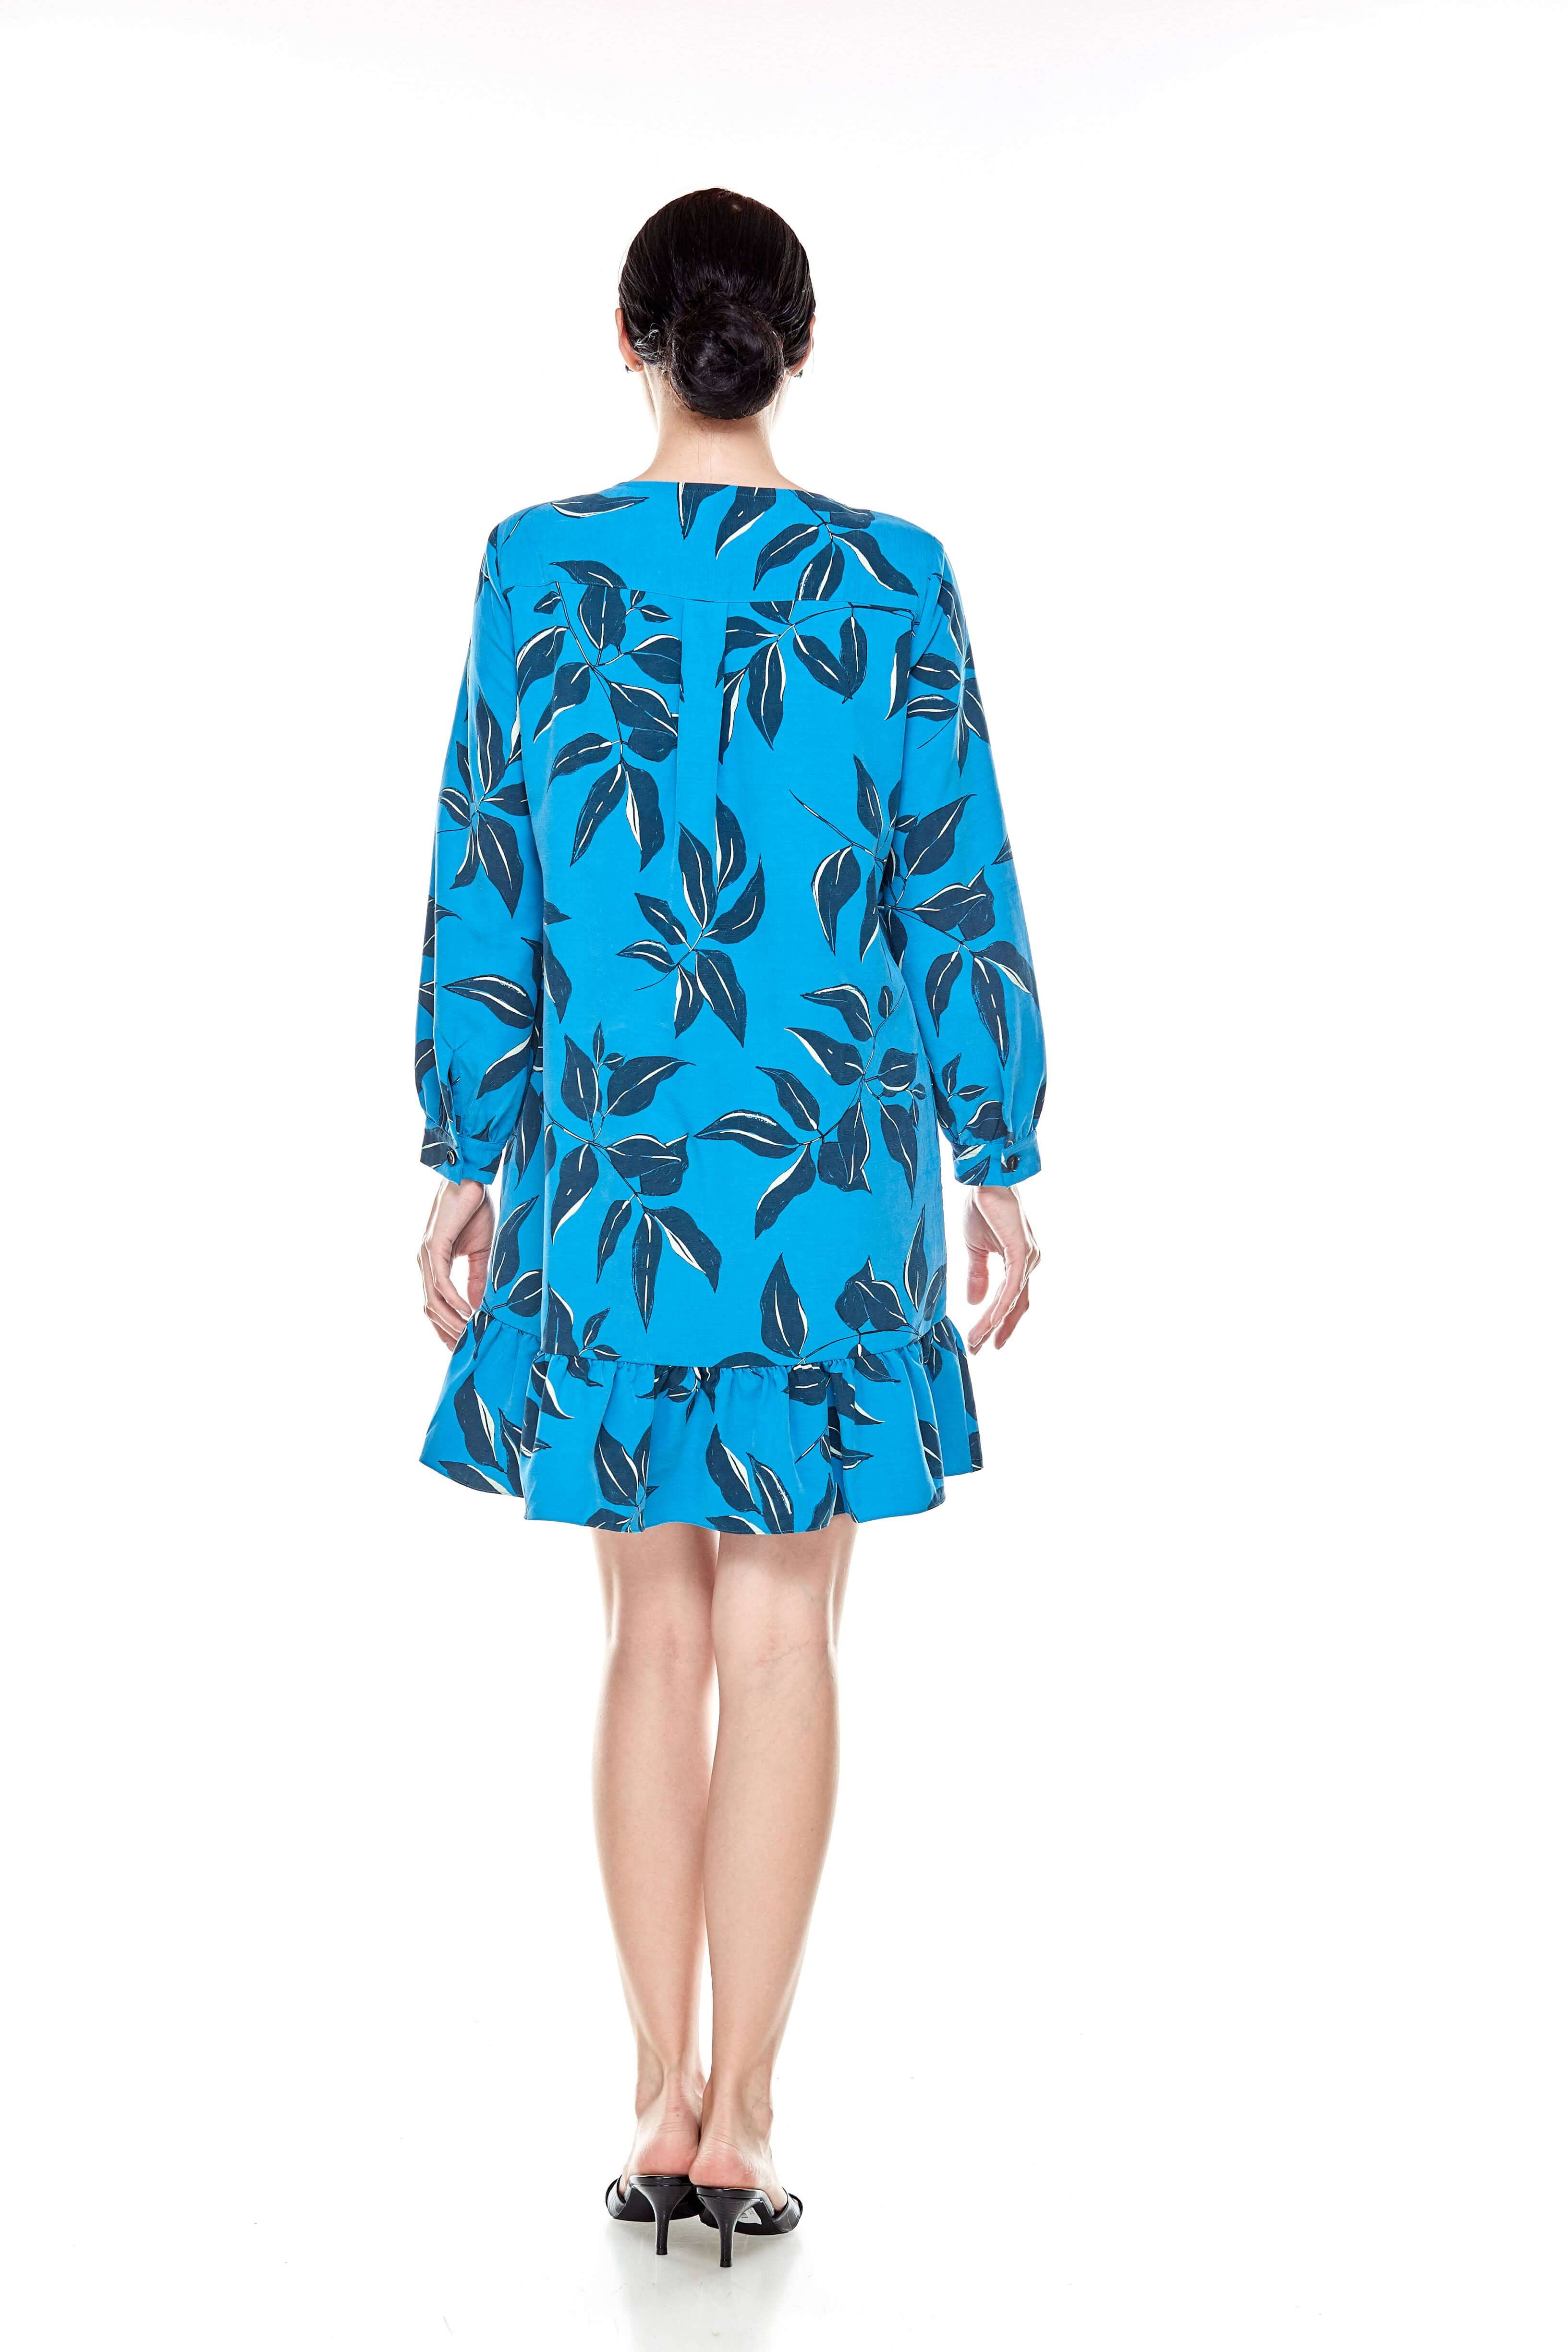 Mosaic Blue Printed Tunic With Bow Sleeves (5)